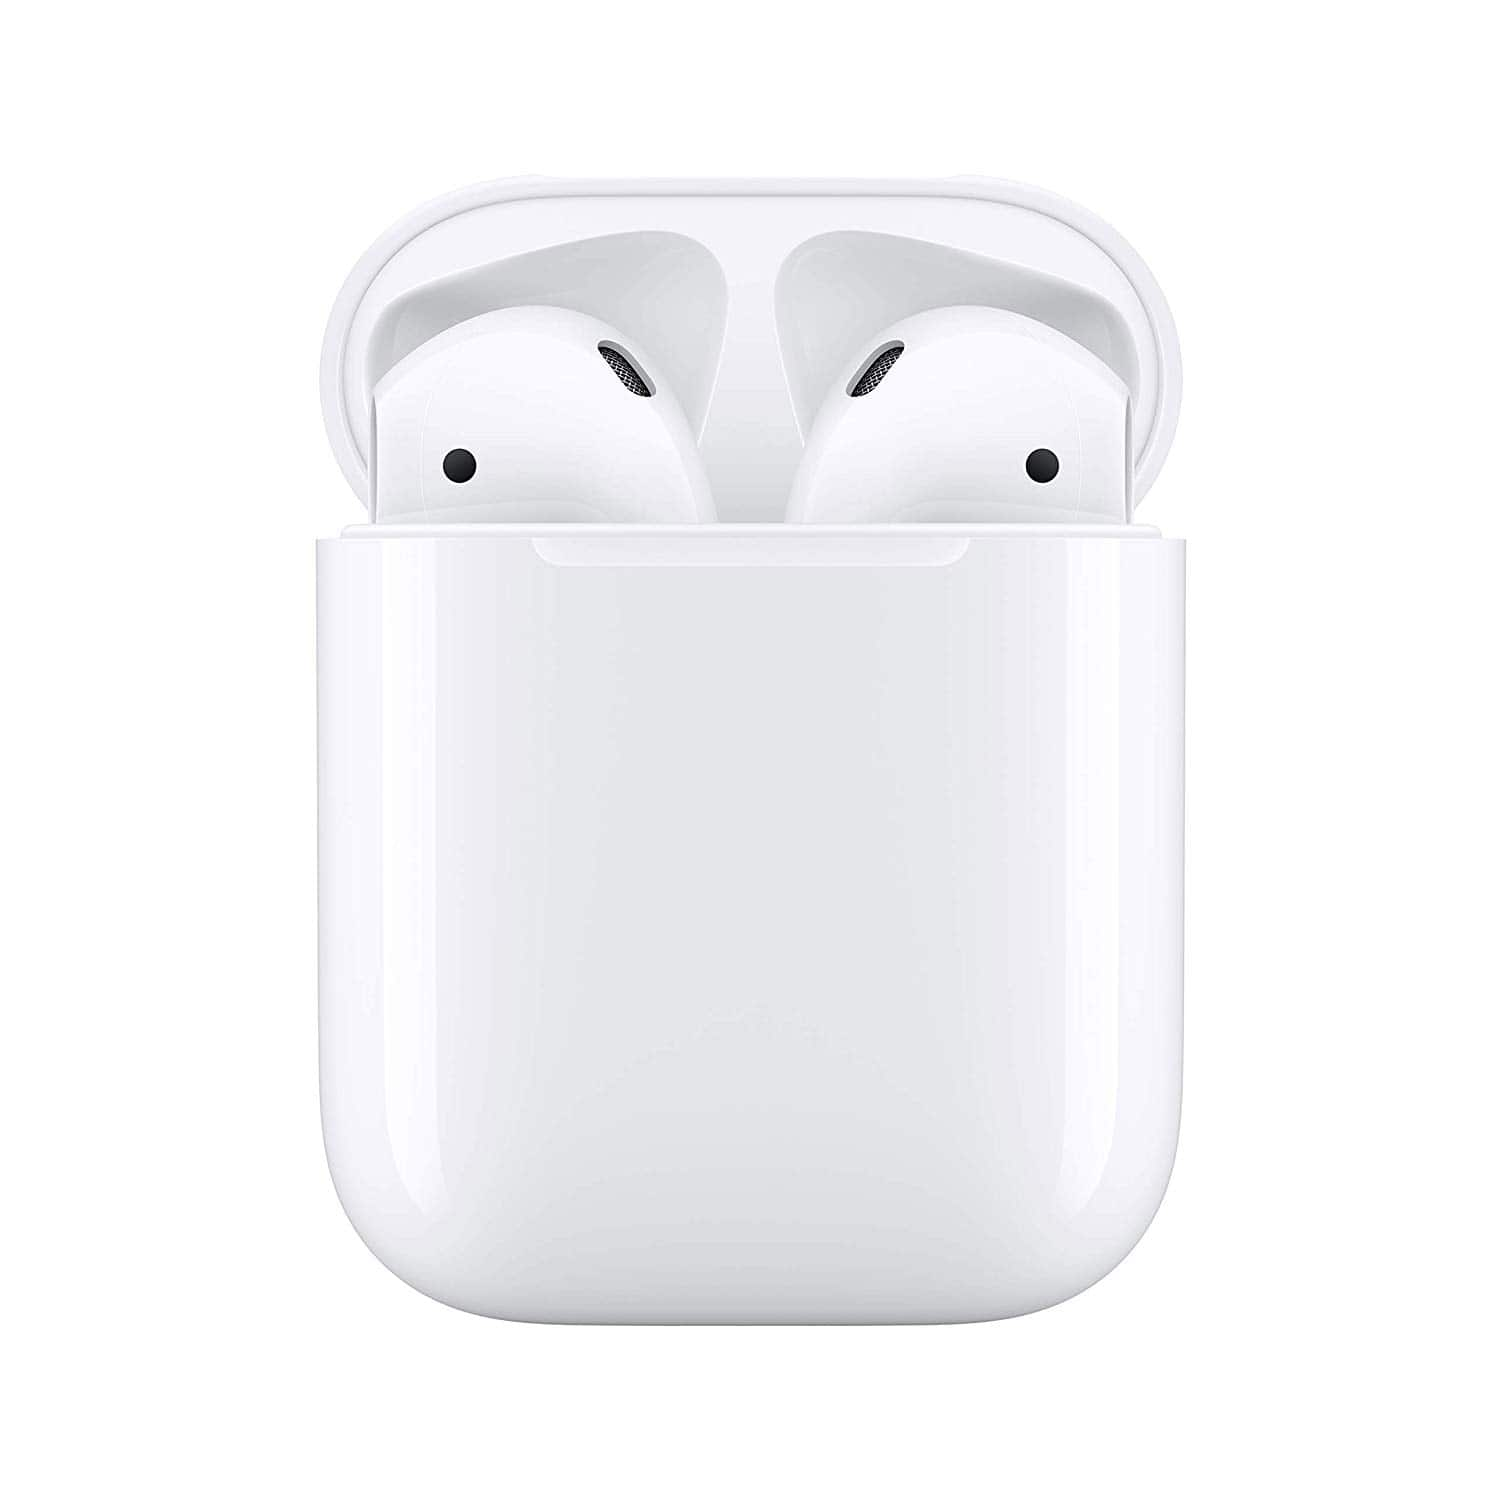 Amazon- Apple AirPods with Charging Case- $98.57 at checkout- Used/Like New